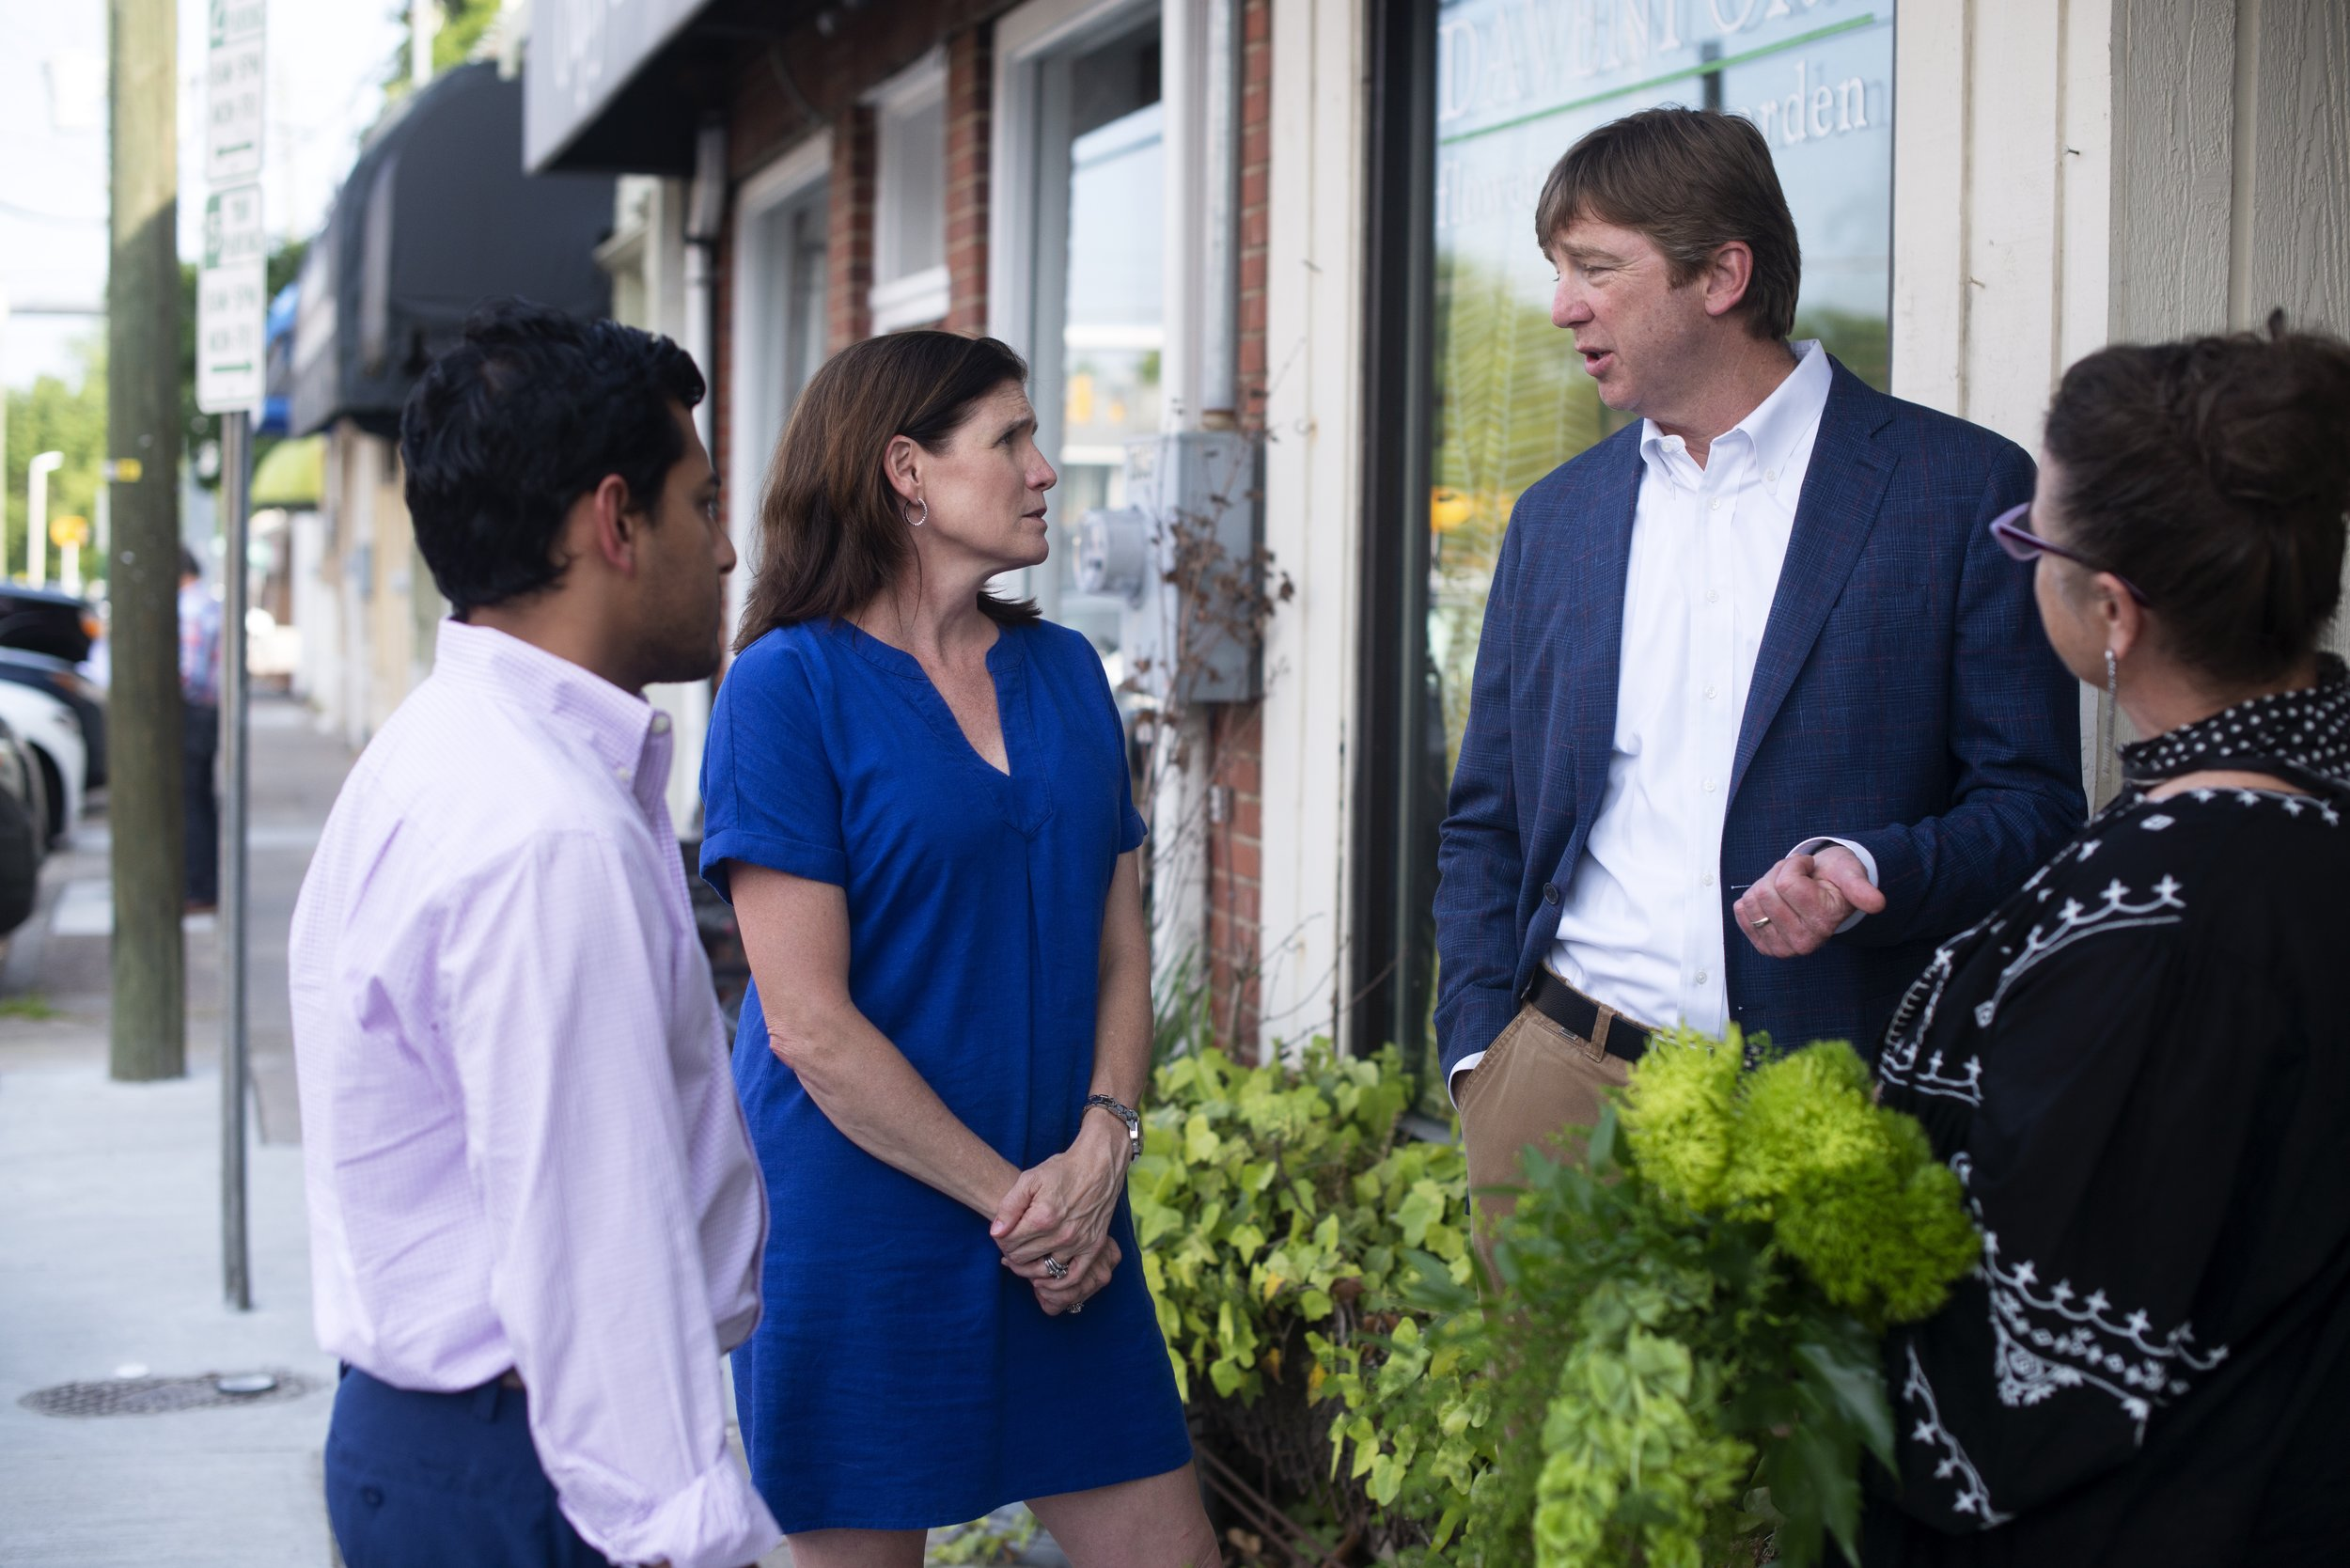 Priorities - When I'm elected, I plan to focus on making our city better for everyone, particularly around economic development, transit, the environment and housing affordability.